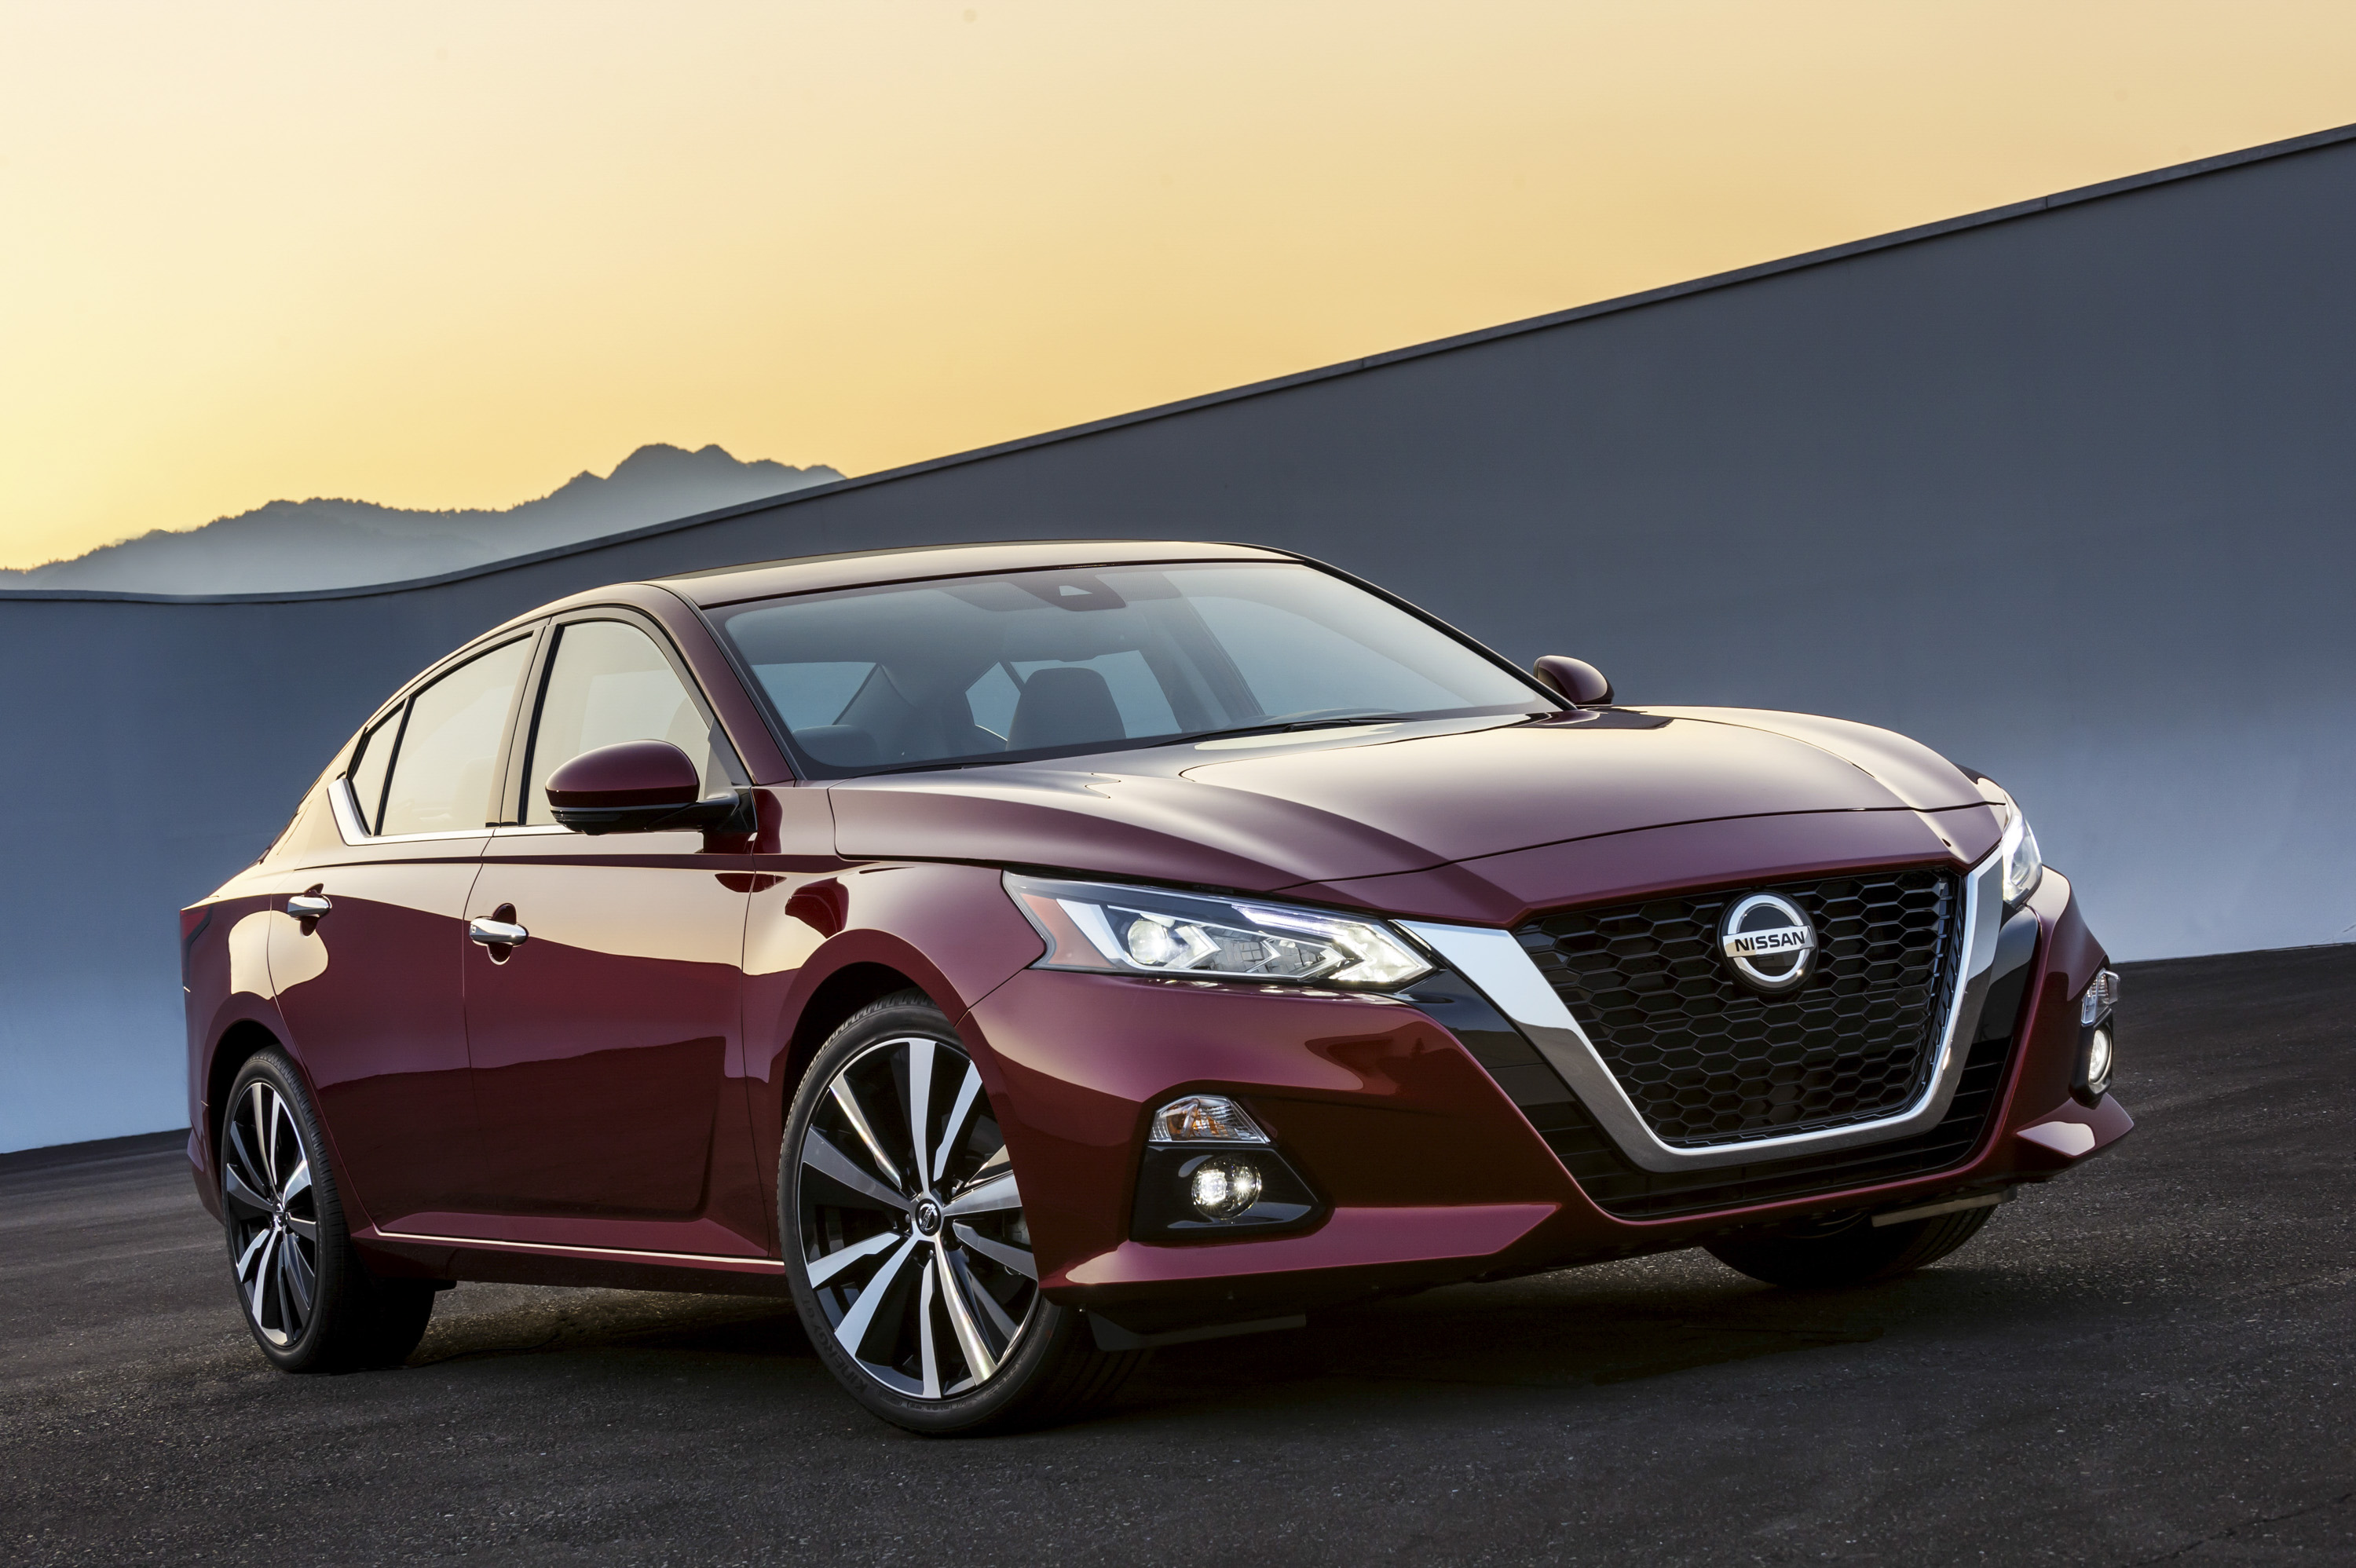 cars review specs new altima reviews sv prices car qatar in sentra front nissan